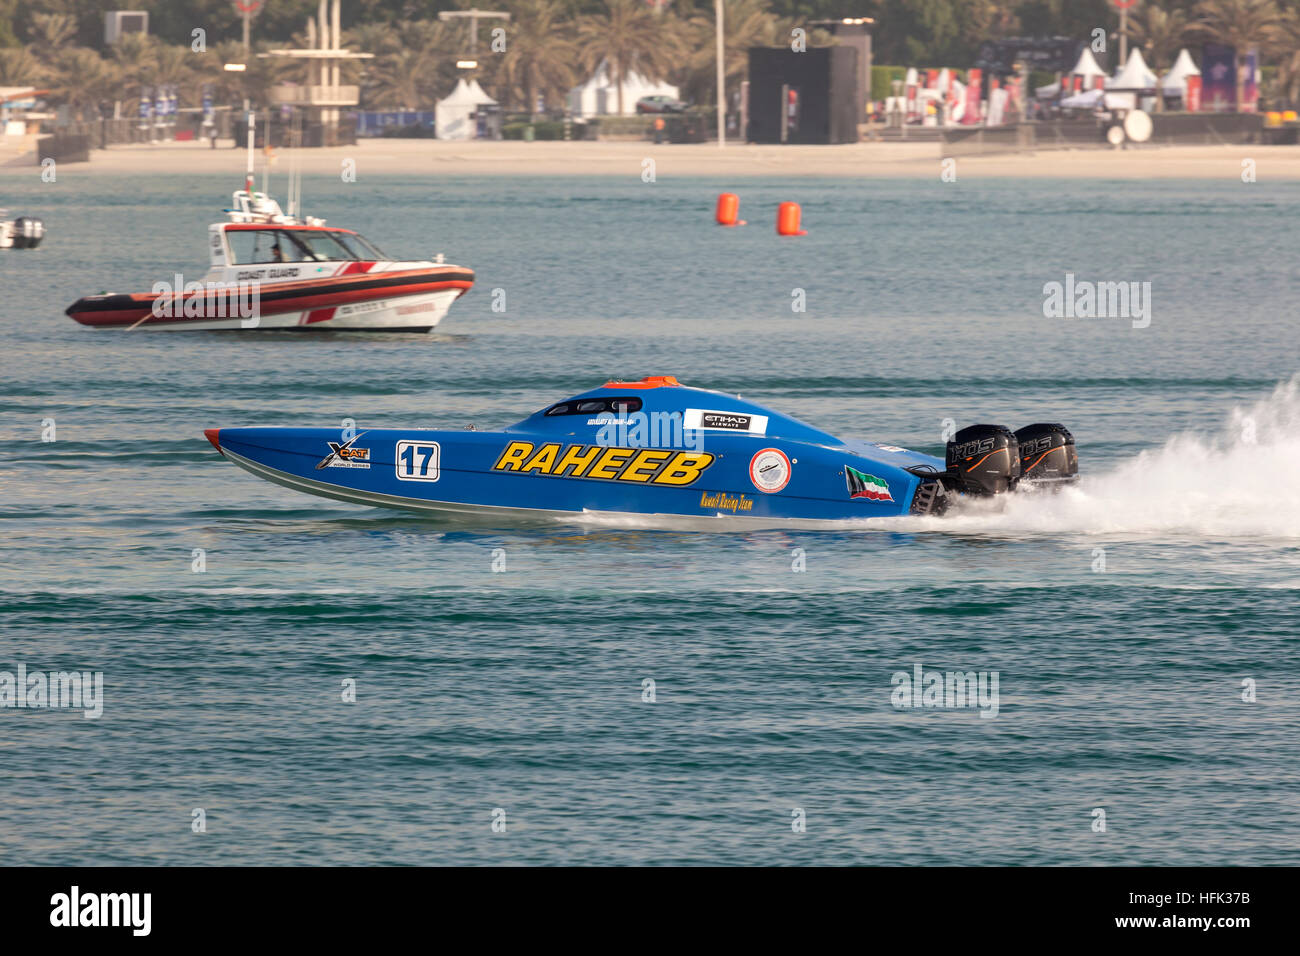 Kuwait Racing Team boat at the Powerboat Championship 2016 in Abu Dhabi - Stock Image